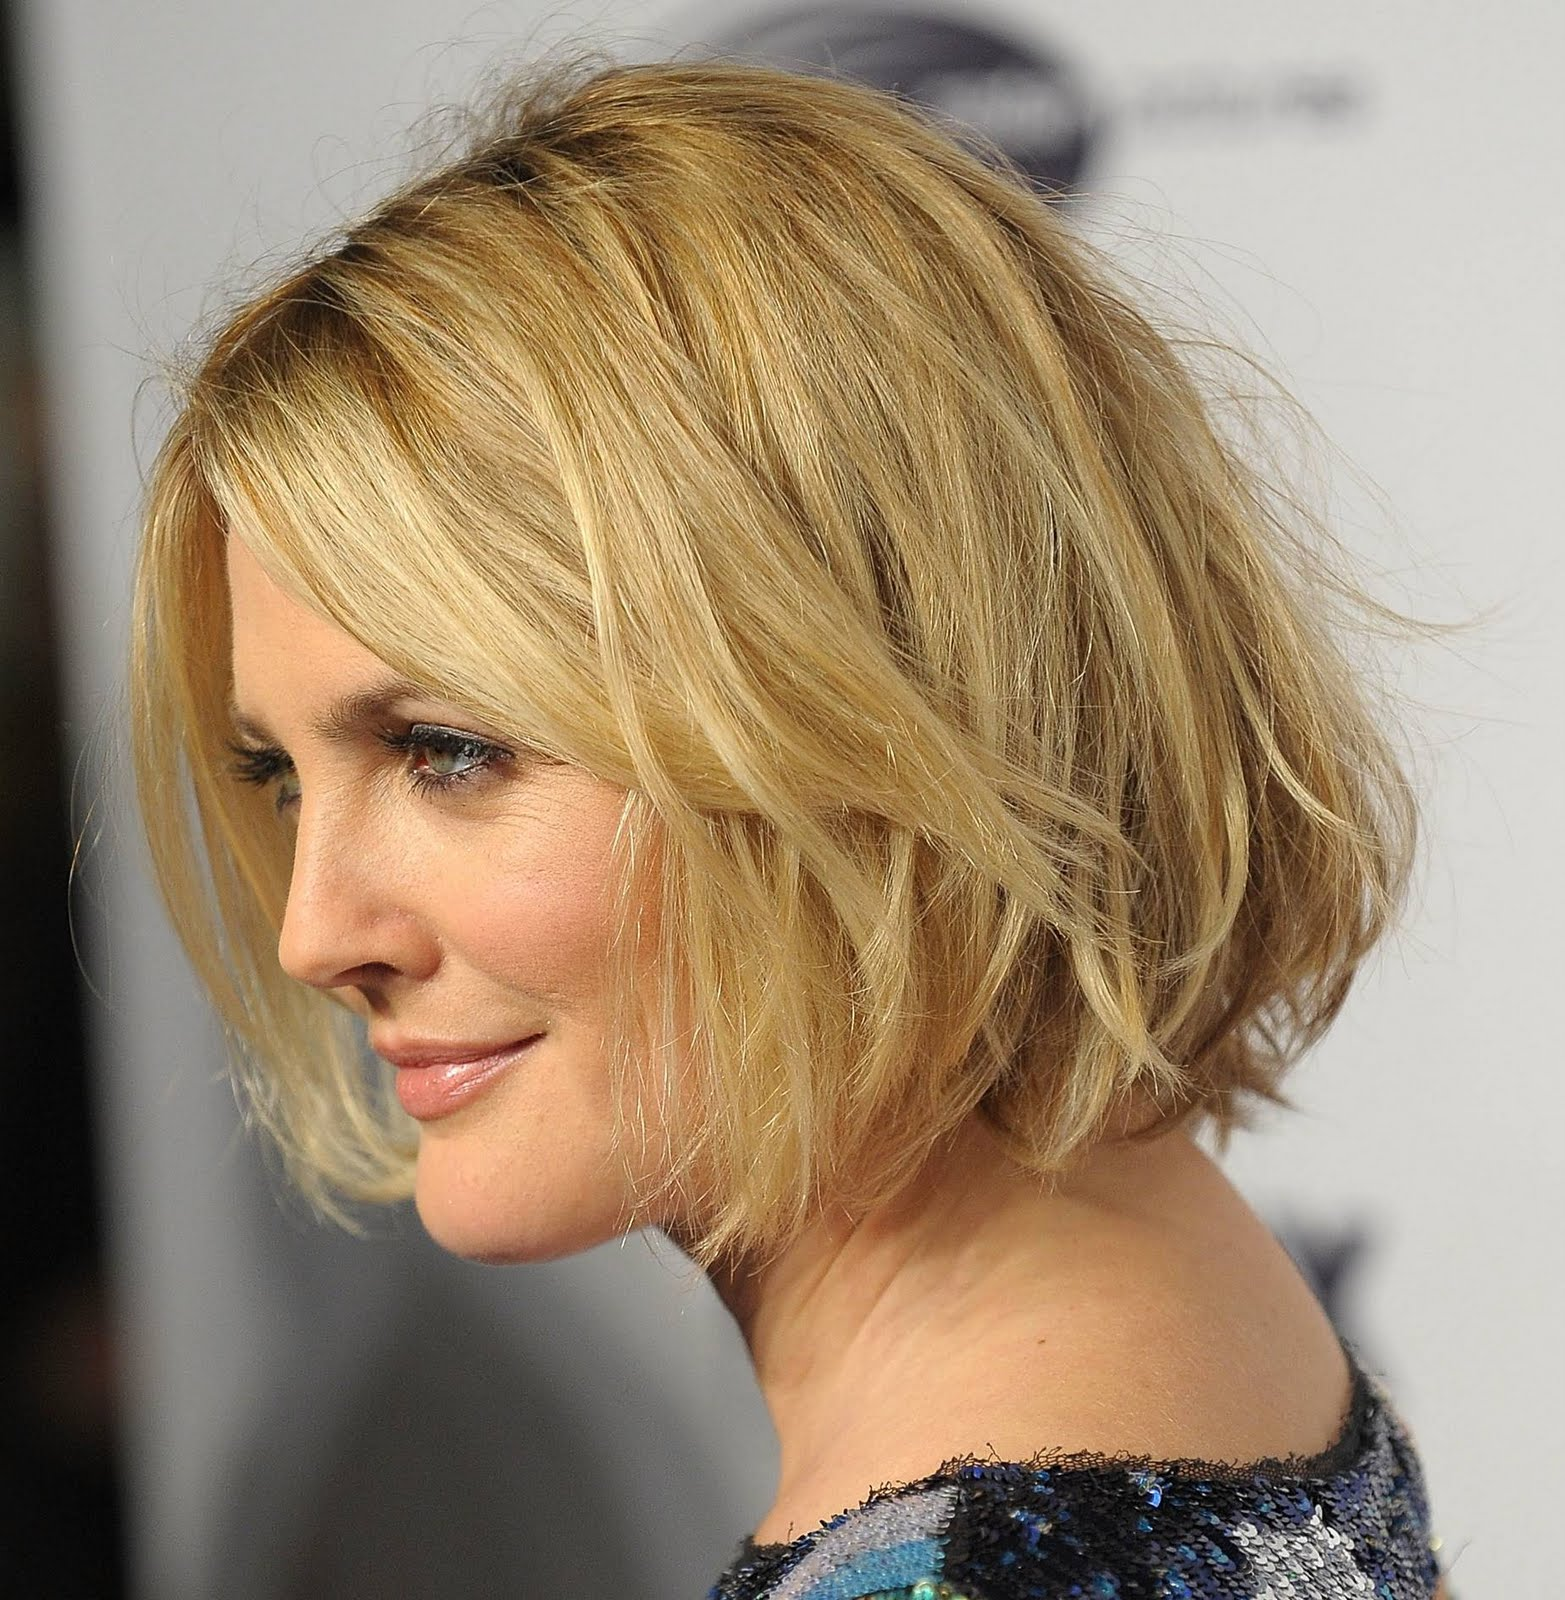 Short Hair Styles: Celebrity Glamorous Bob Hairstyle Pictures